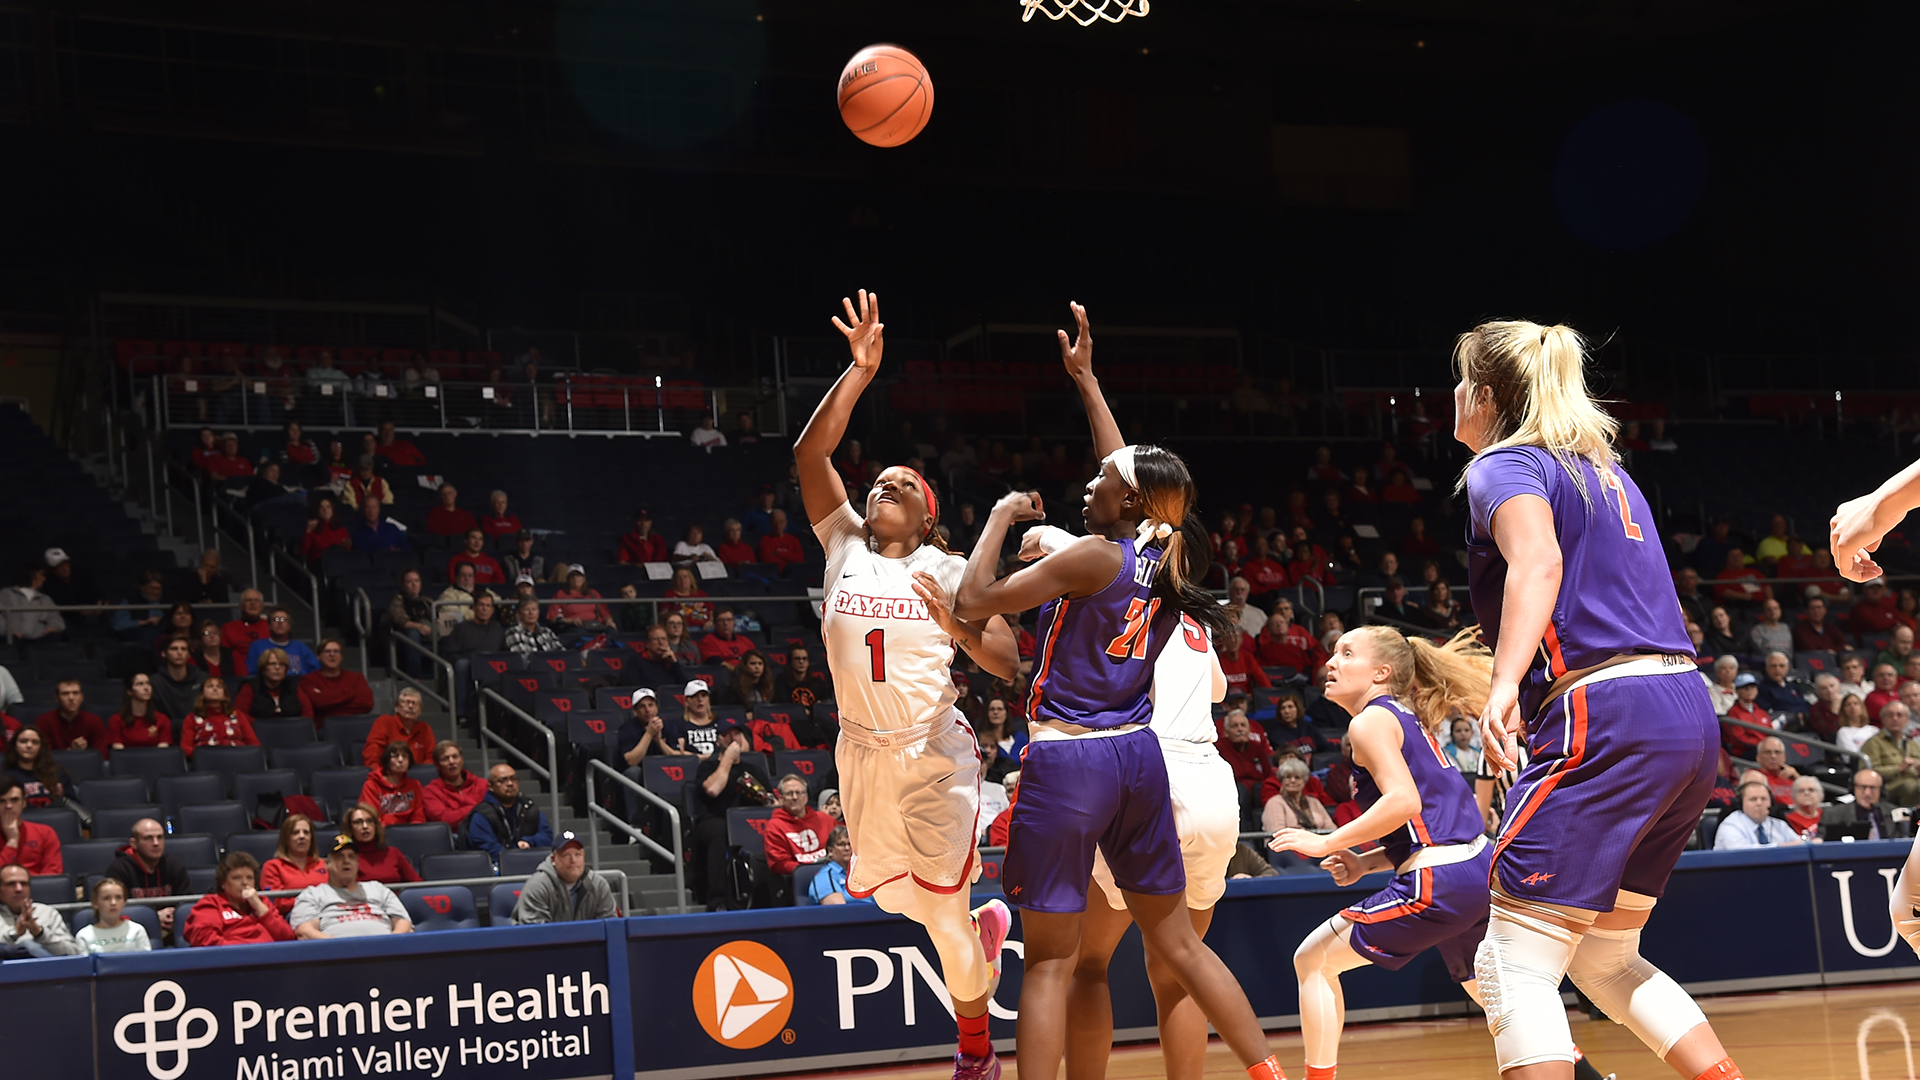 women's basketball - university of dayton athletics